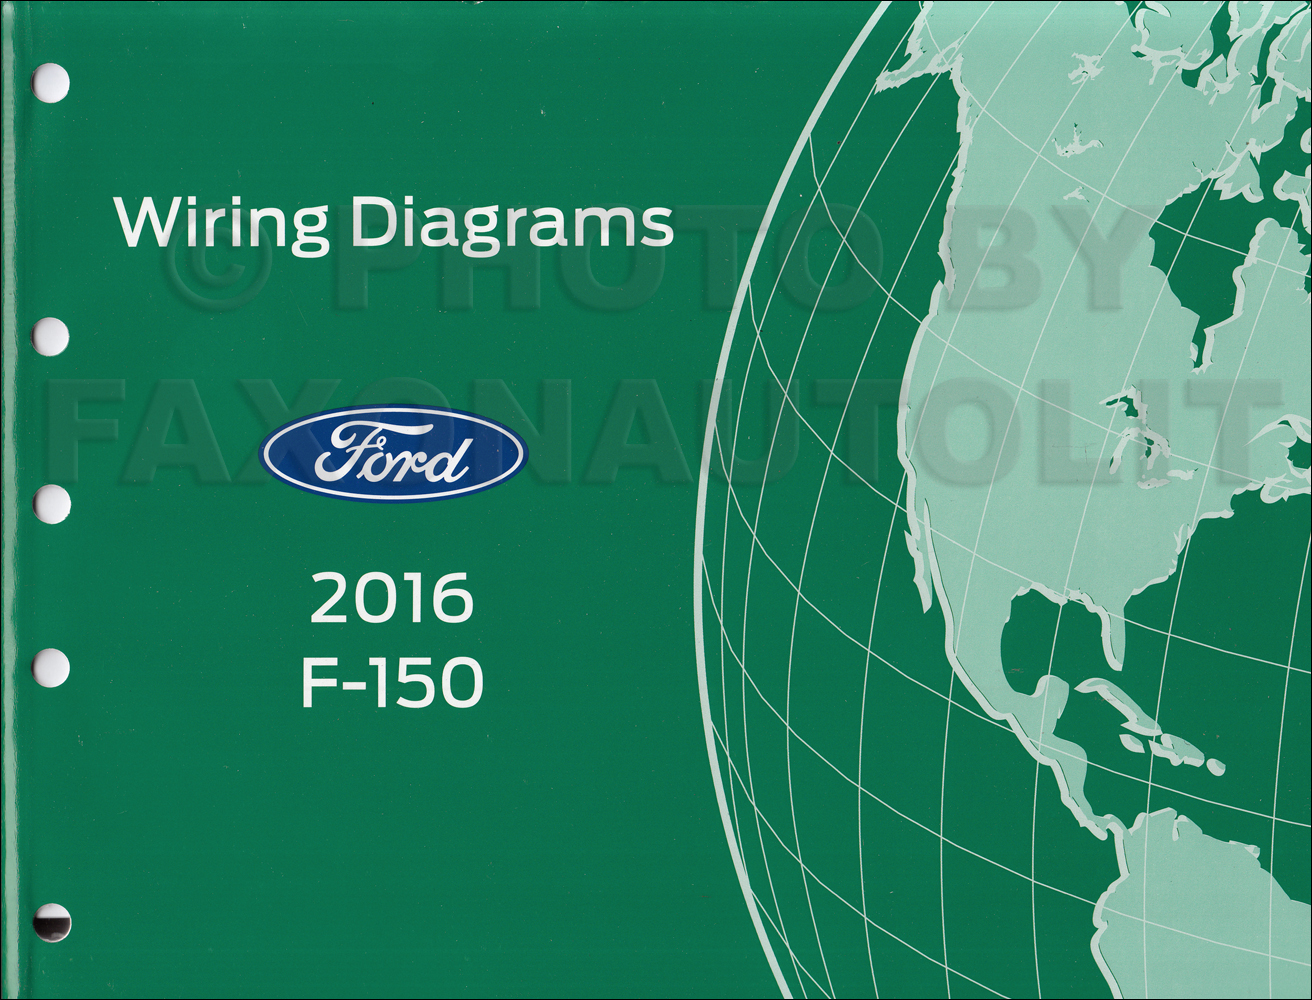 ford f 150 truck wiring diagram 2016 ford f-150 wiring diagram manual original